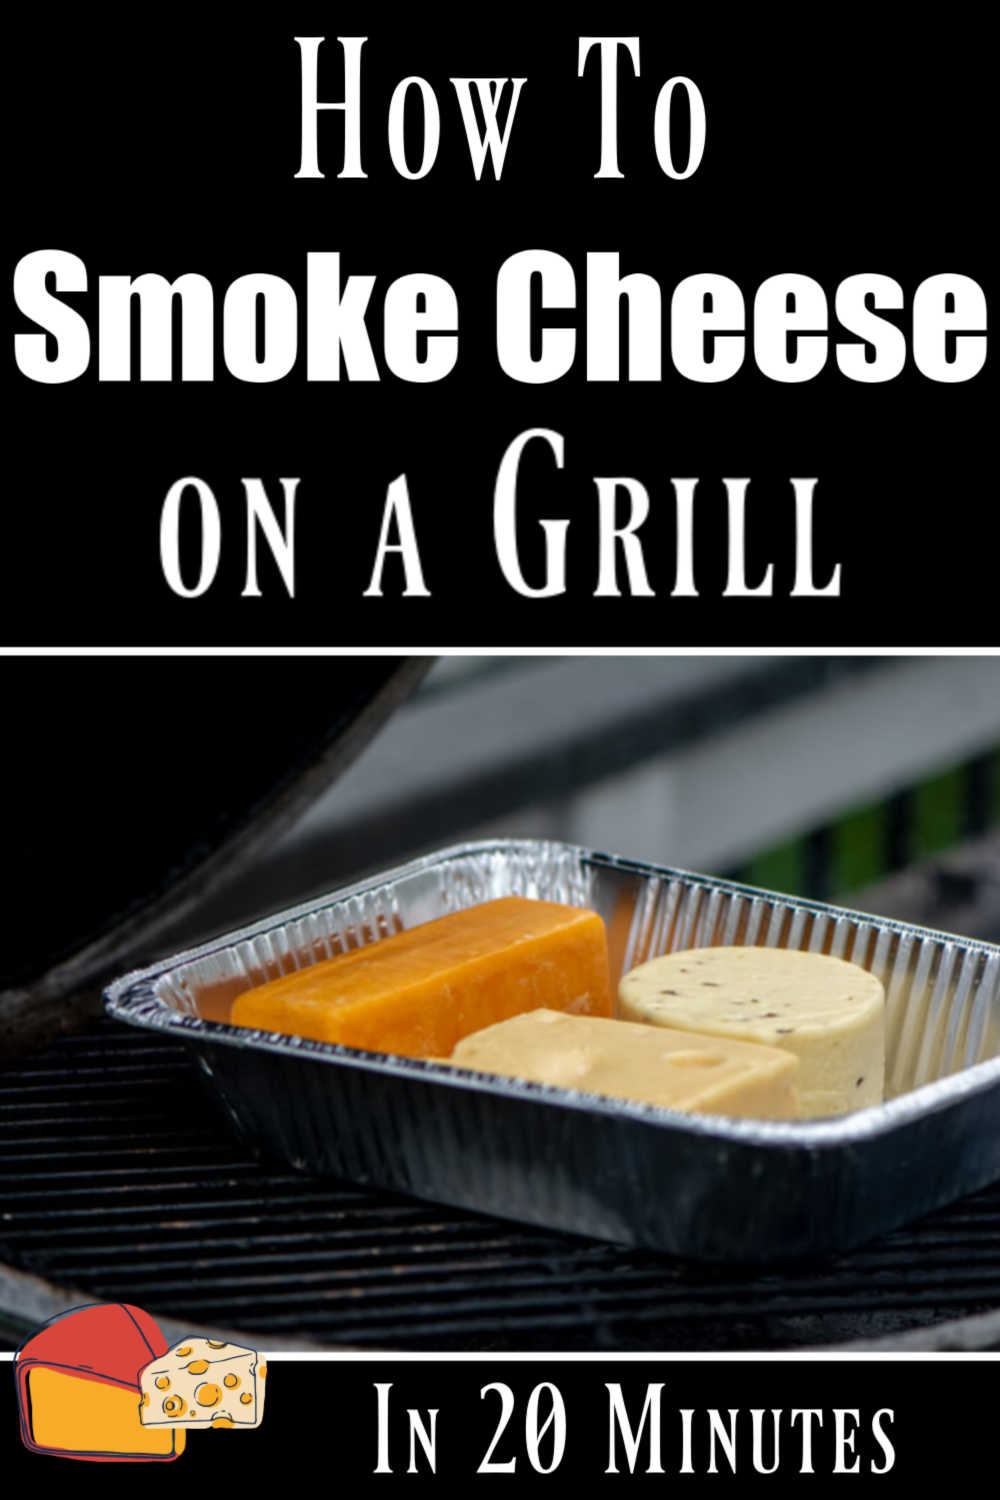 How to Smoke Cheese on the Grill